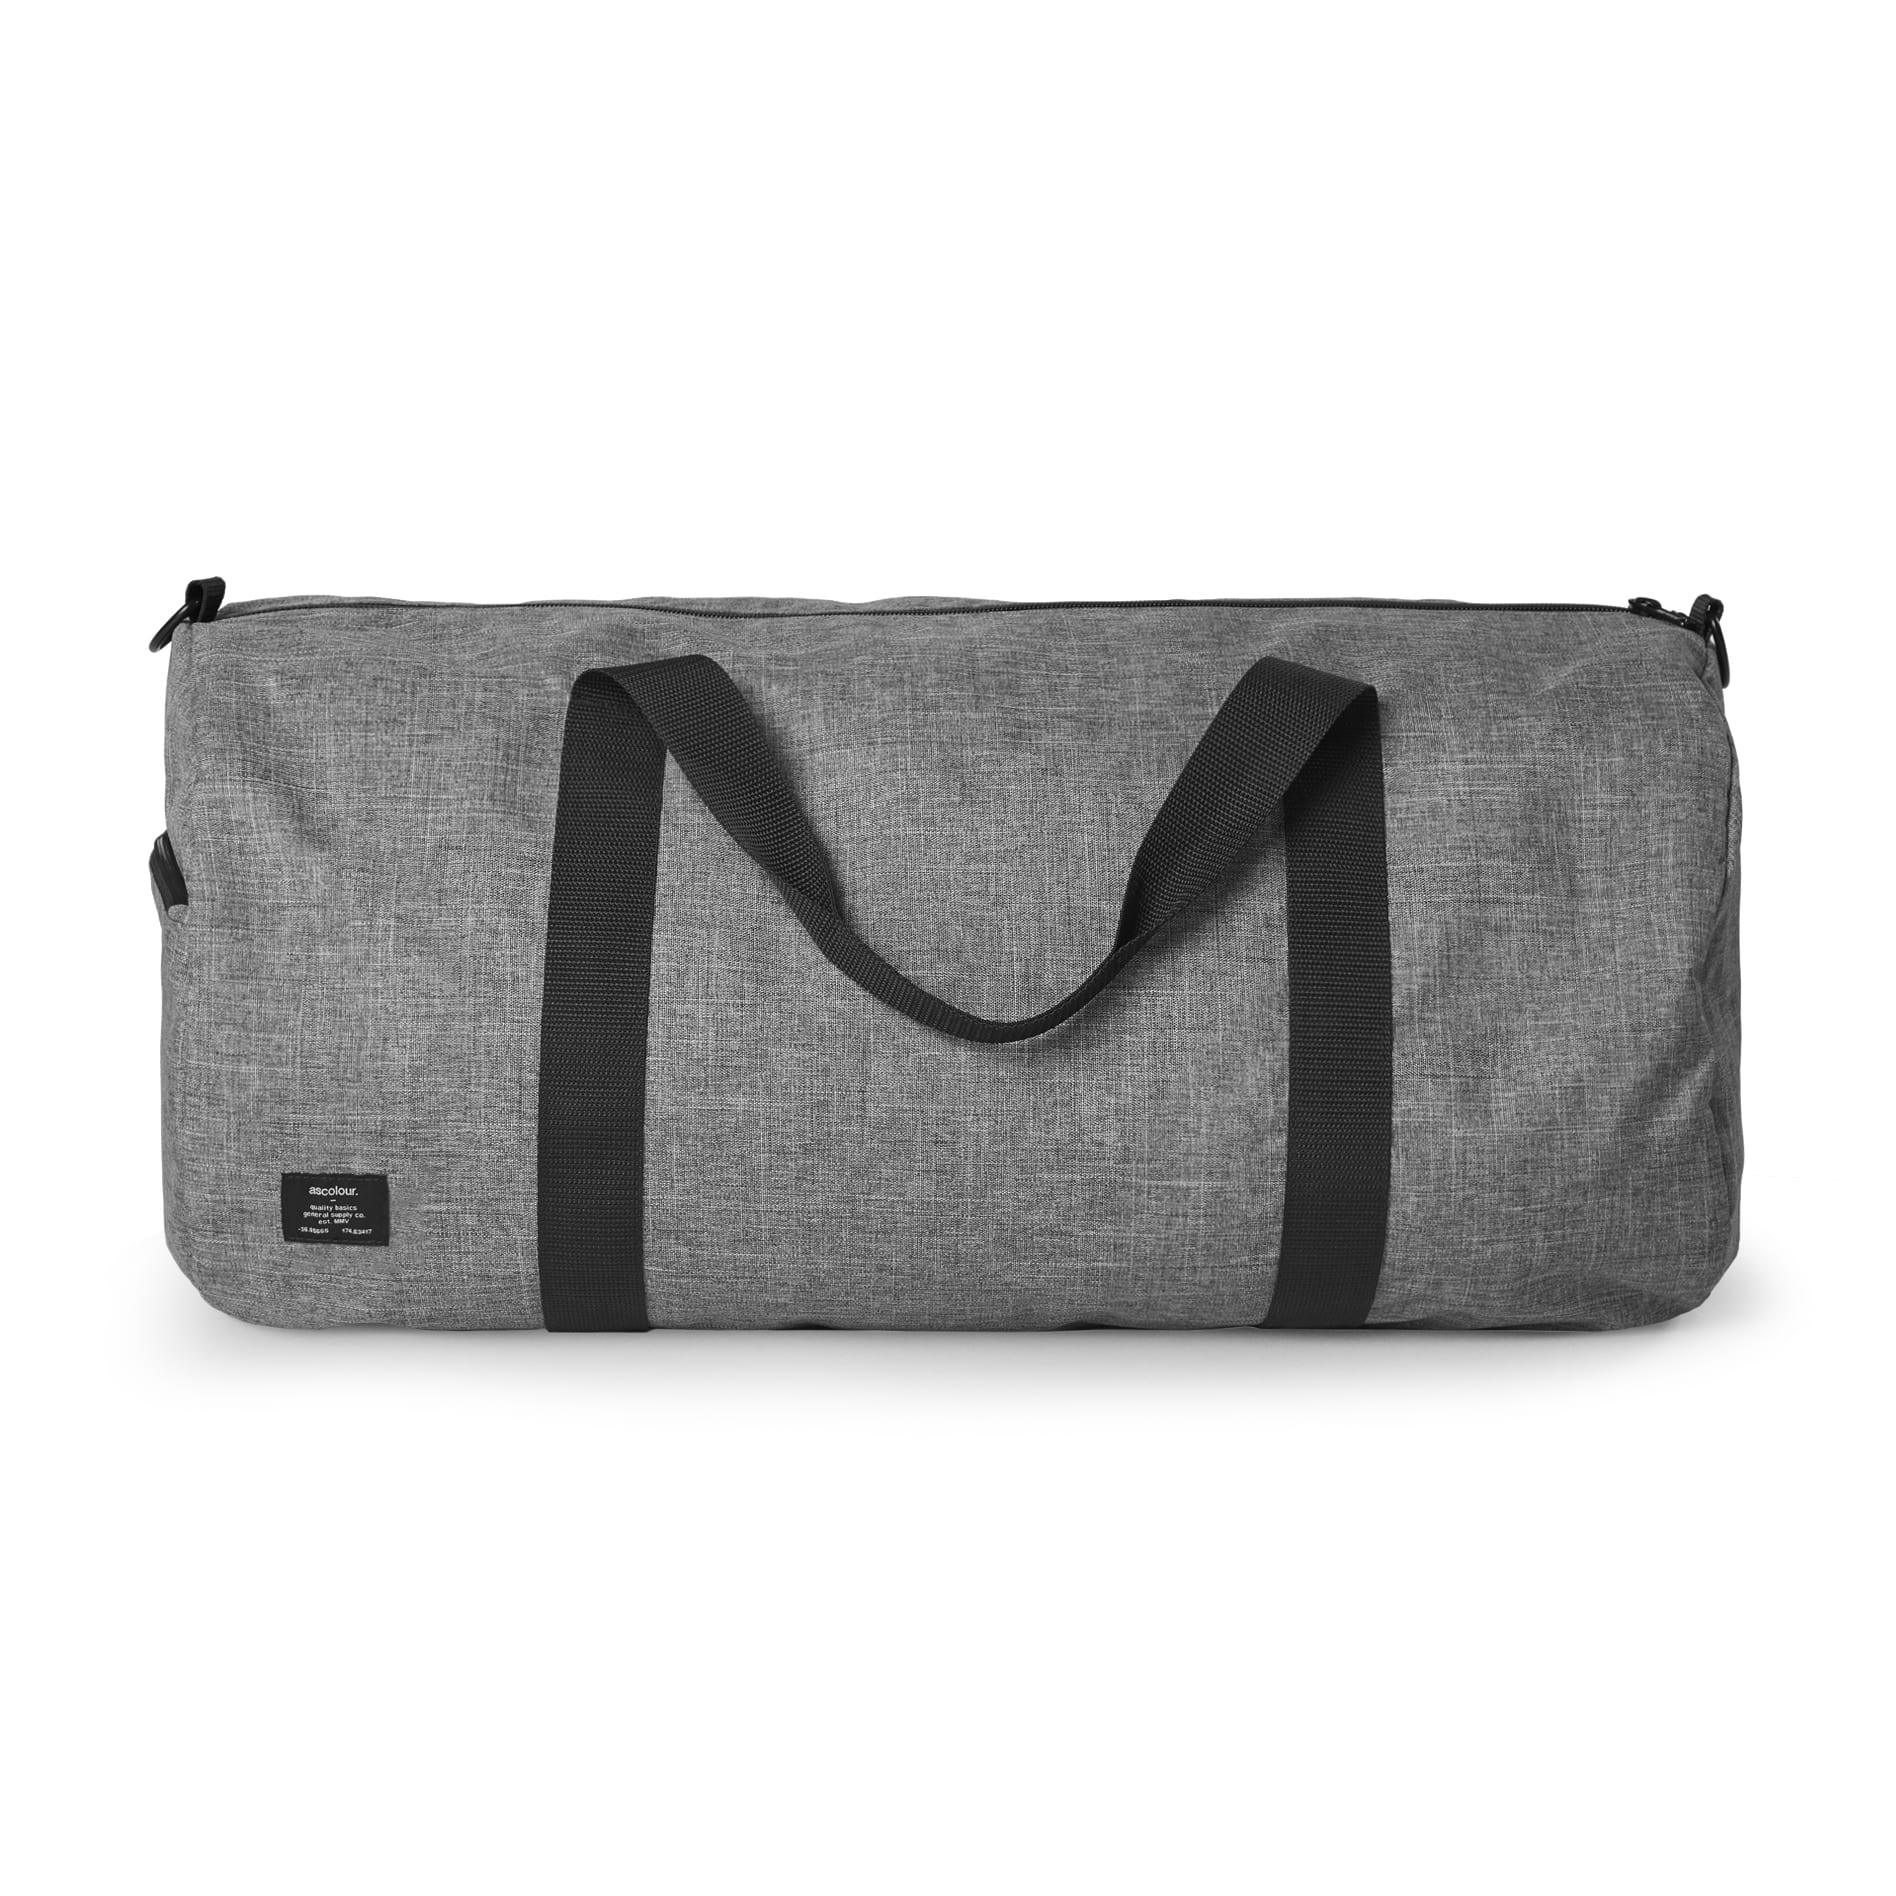 AS 1008 Area Contrast Duffel Bag